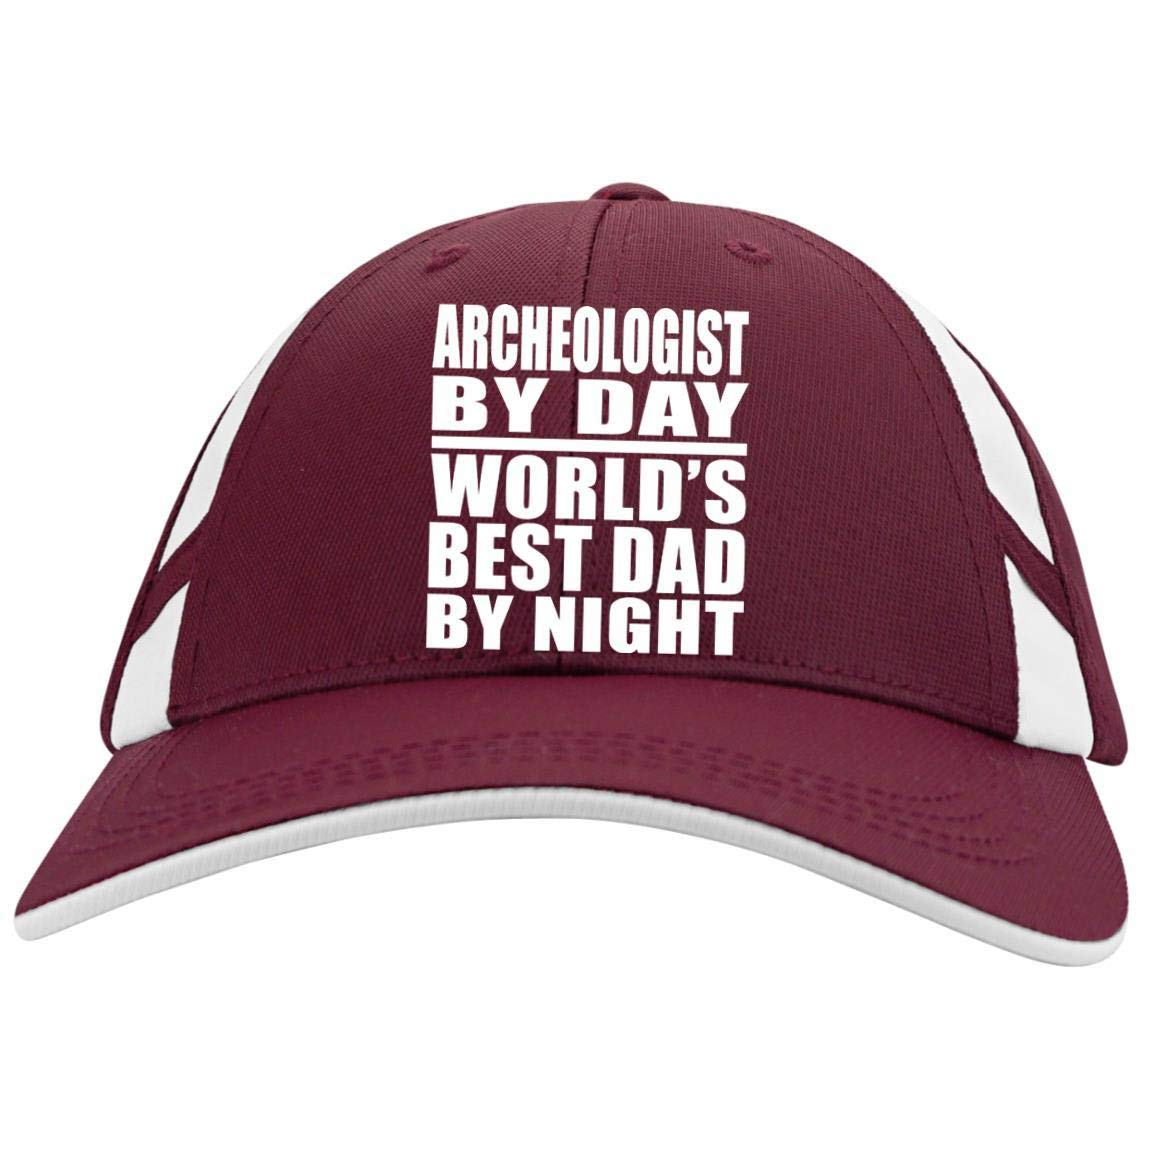 Archeologist by Day World's Best Dad by Night - Mesh Inset Cap Designsify